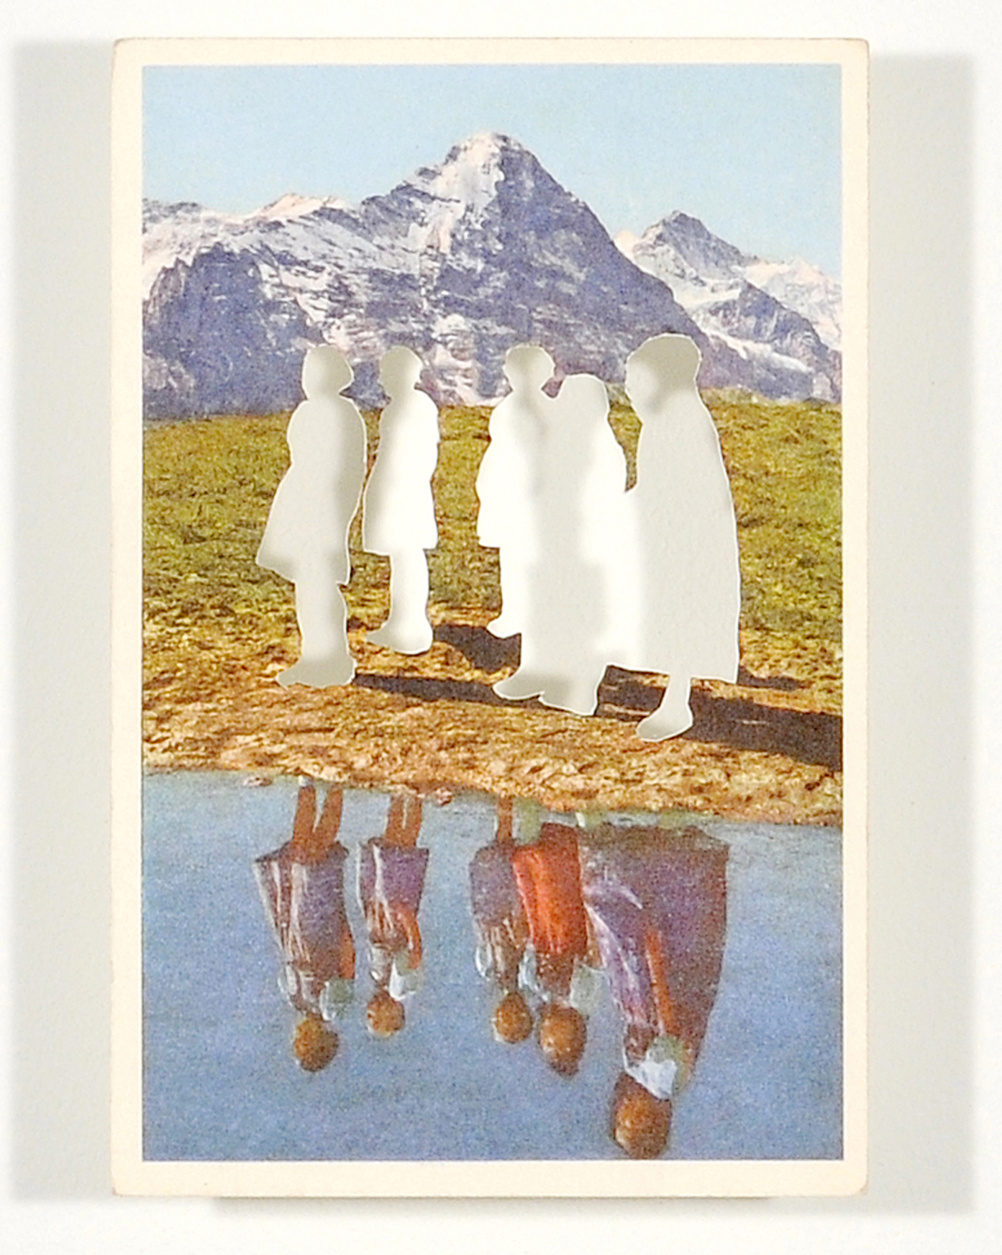 Tim Davies, from the series Figures in a Landscape, cut postcard, 2004-8